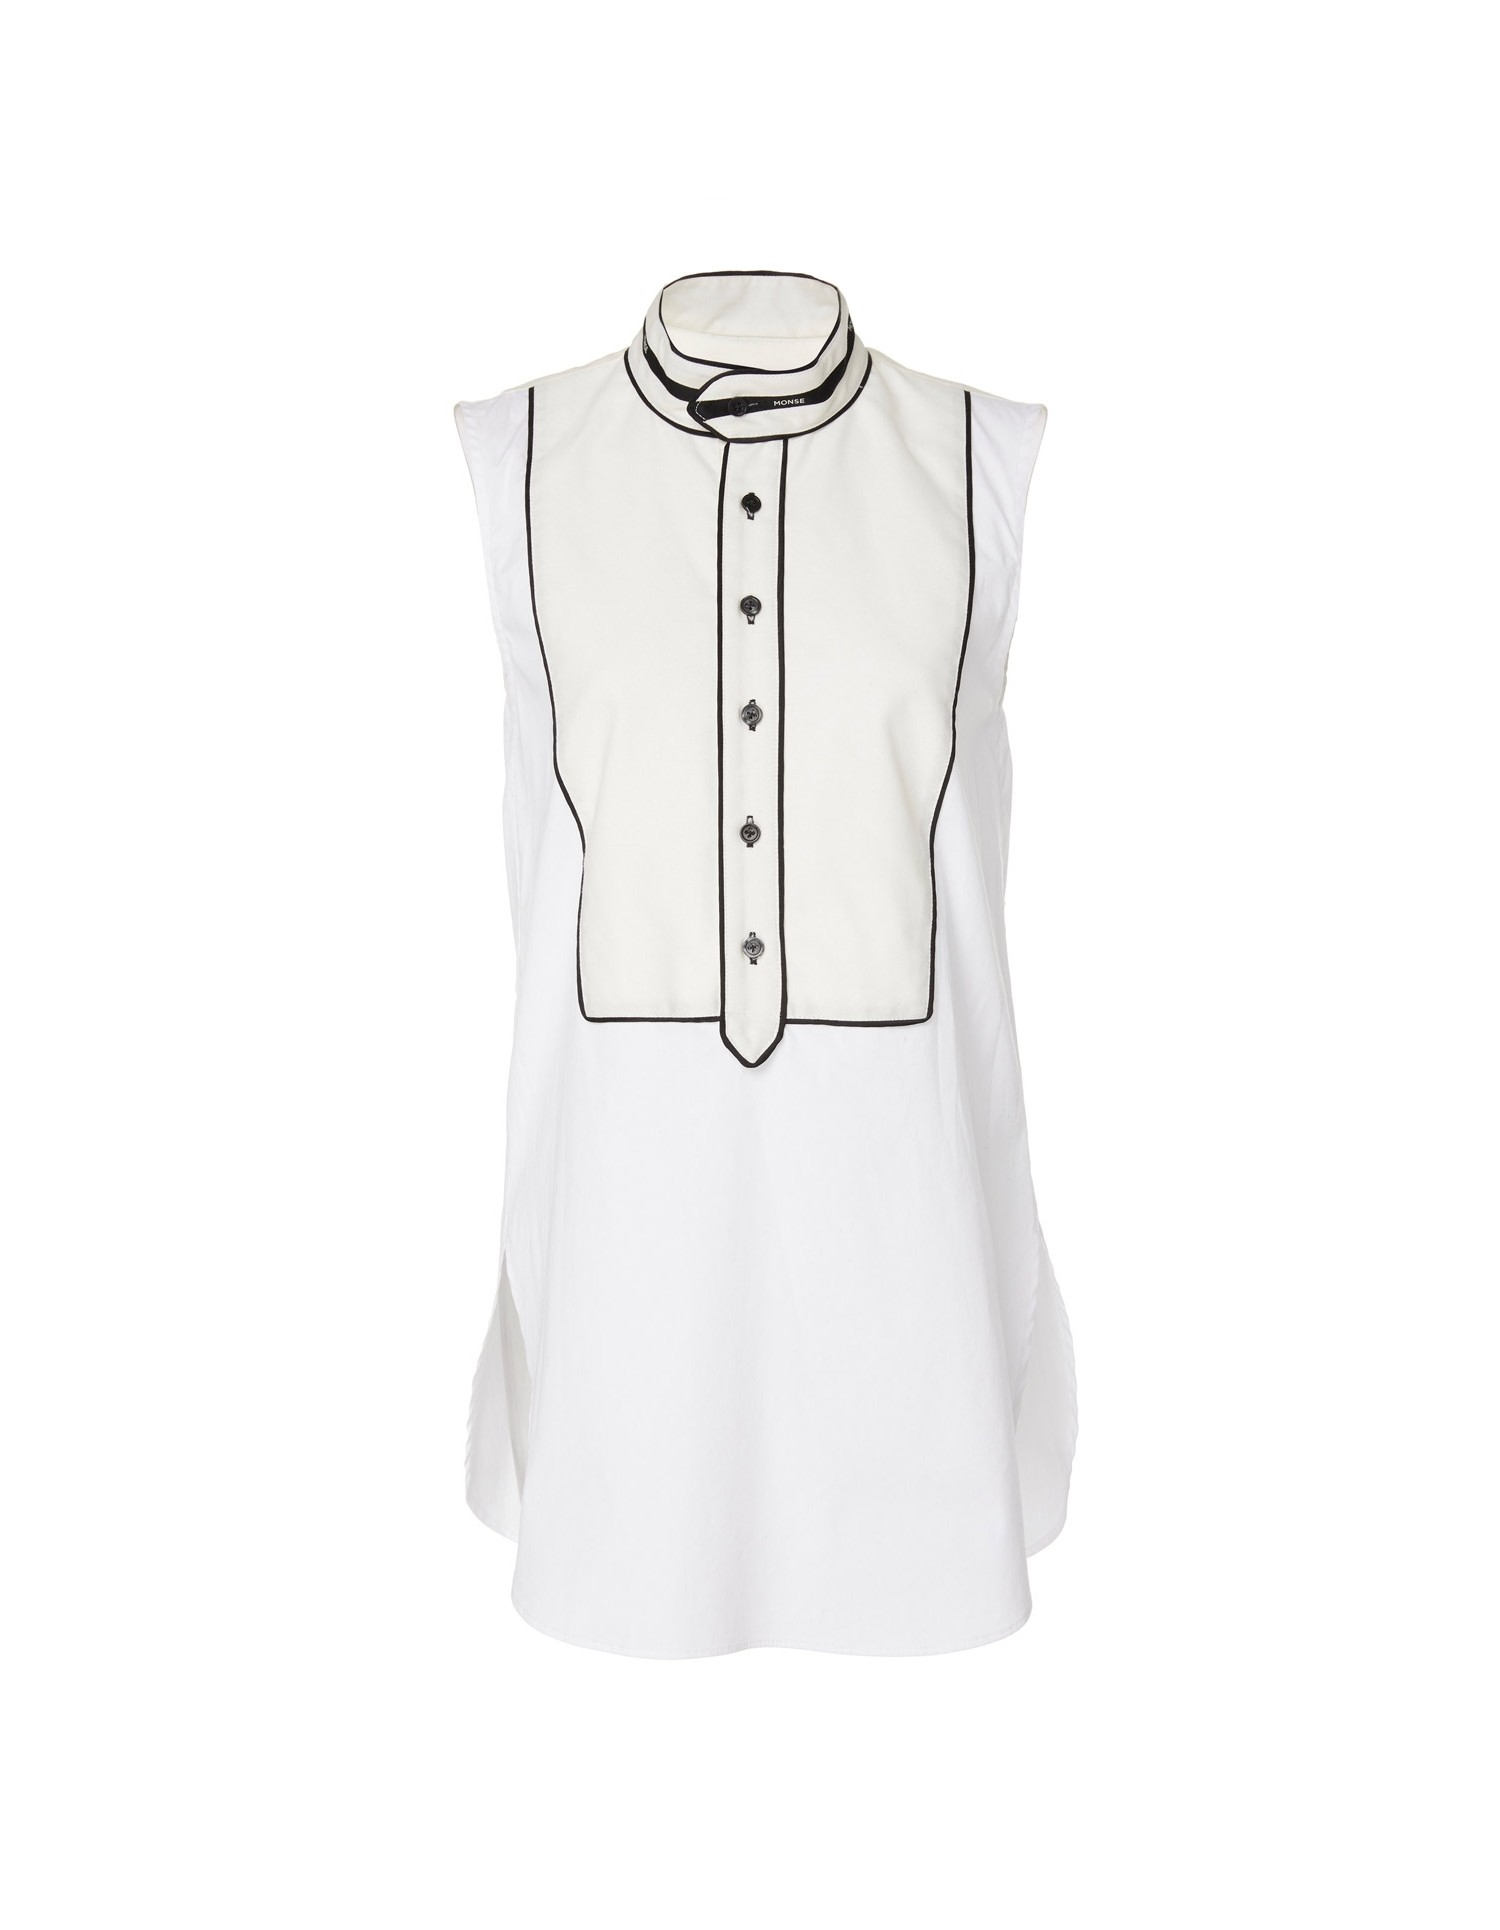 MONSE Inside Out Sleeveless Top Flat Front